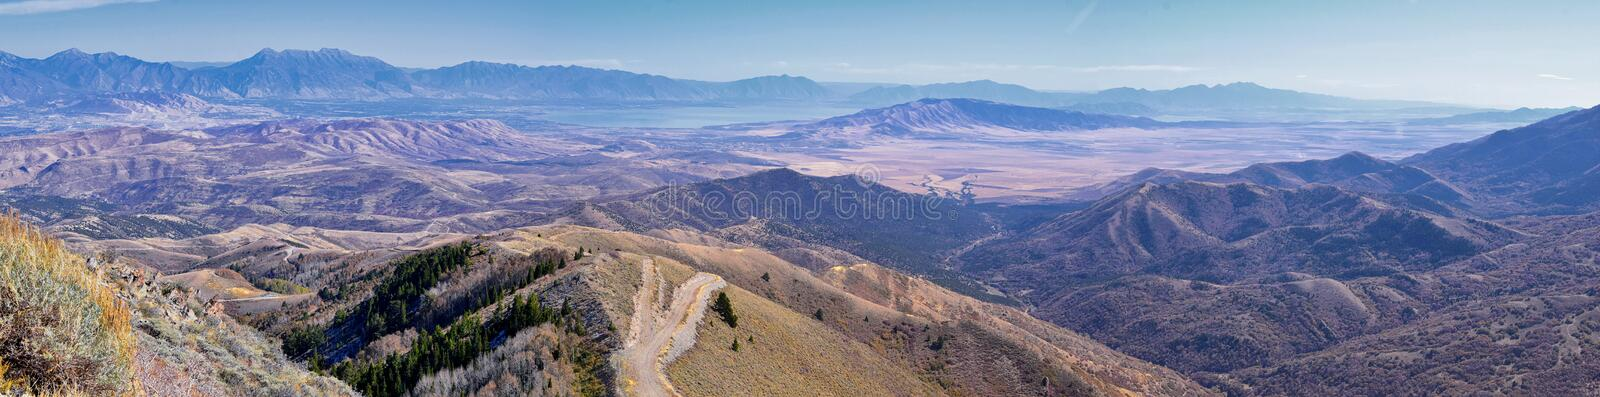 Wasatch Front Rocky Mountain landscapes from Oquirrh range looking at Utah Lake during fall. Panorama views near Provo, Timpanogos. Lone and Twin Peaks. Salt stock photography